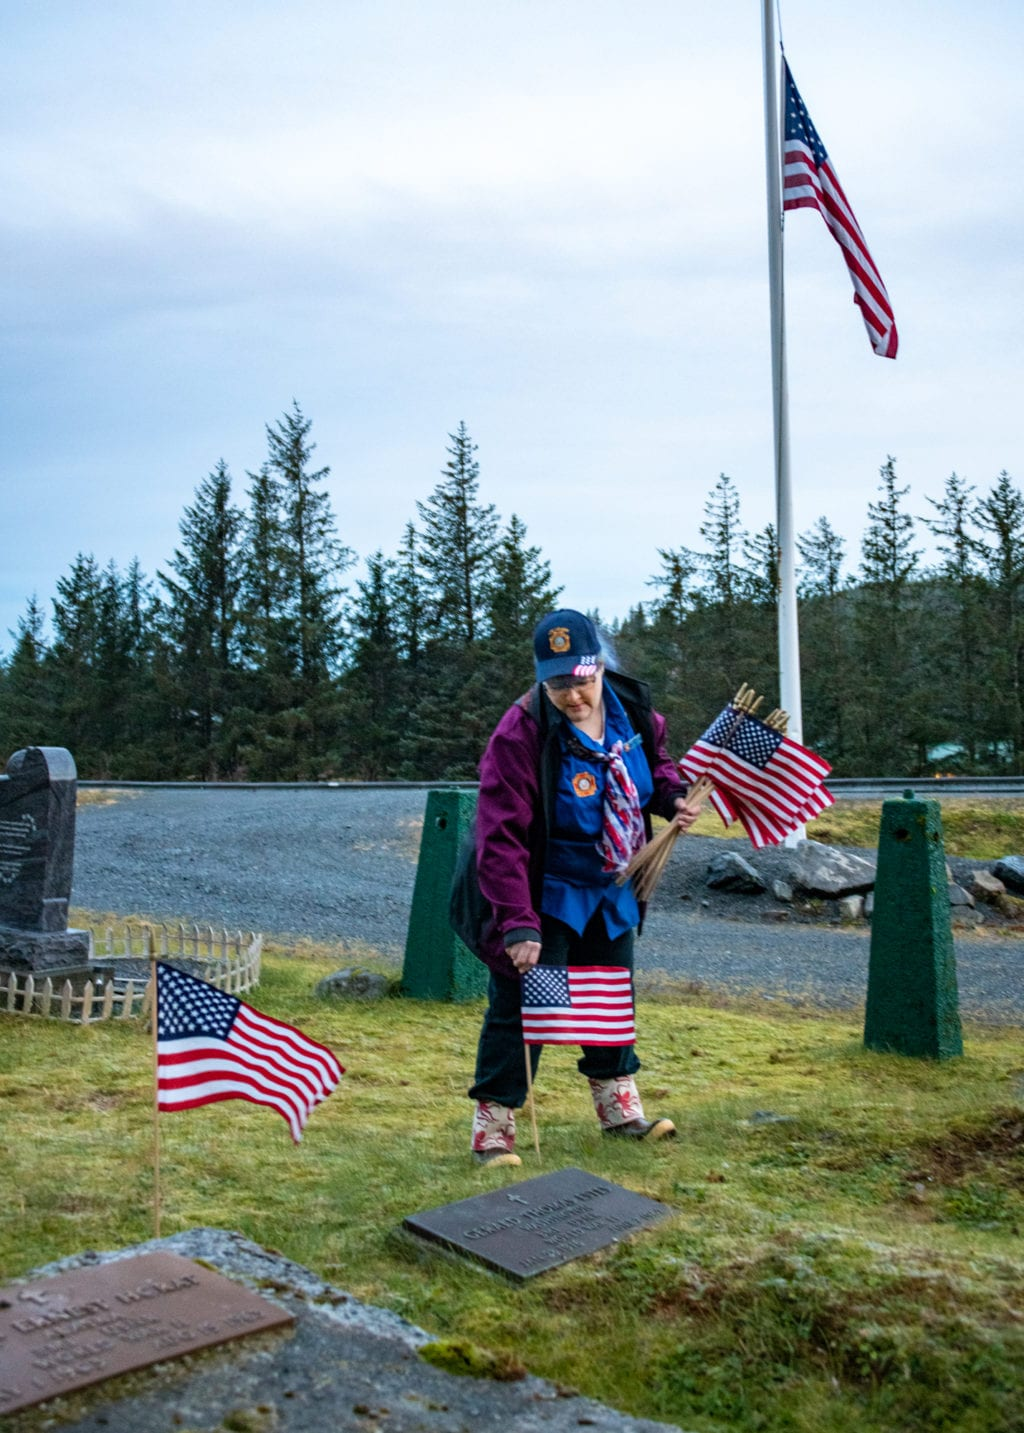 Wendy Ranney plants flags at Cordova Cemetery on Veterans Day. (Nov. 11, 2019) Photo by Zachary Snowdon Smith/The Cordova Times